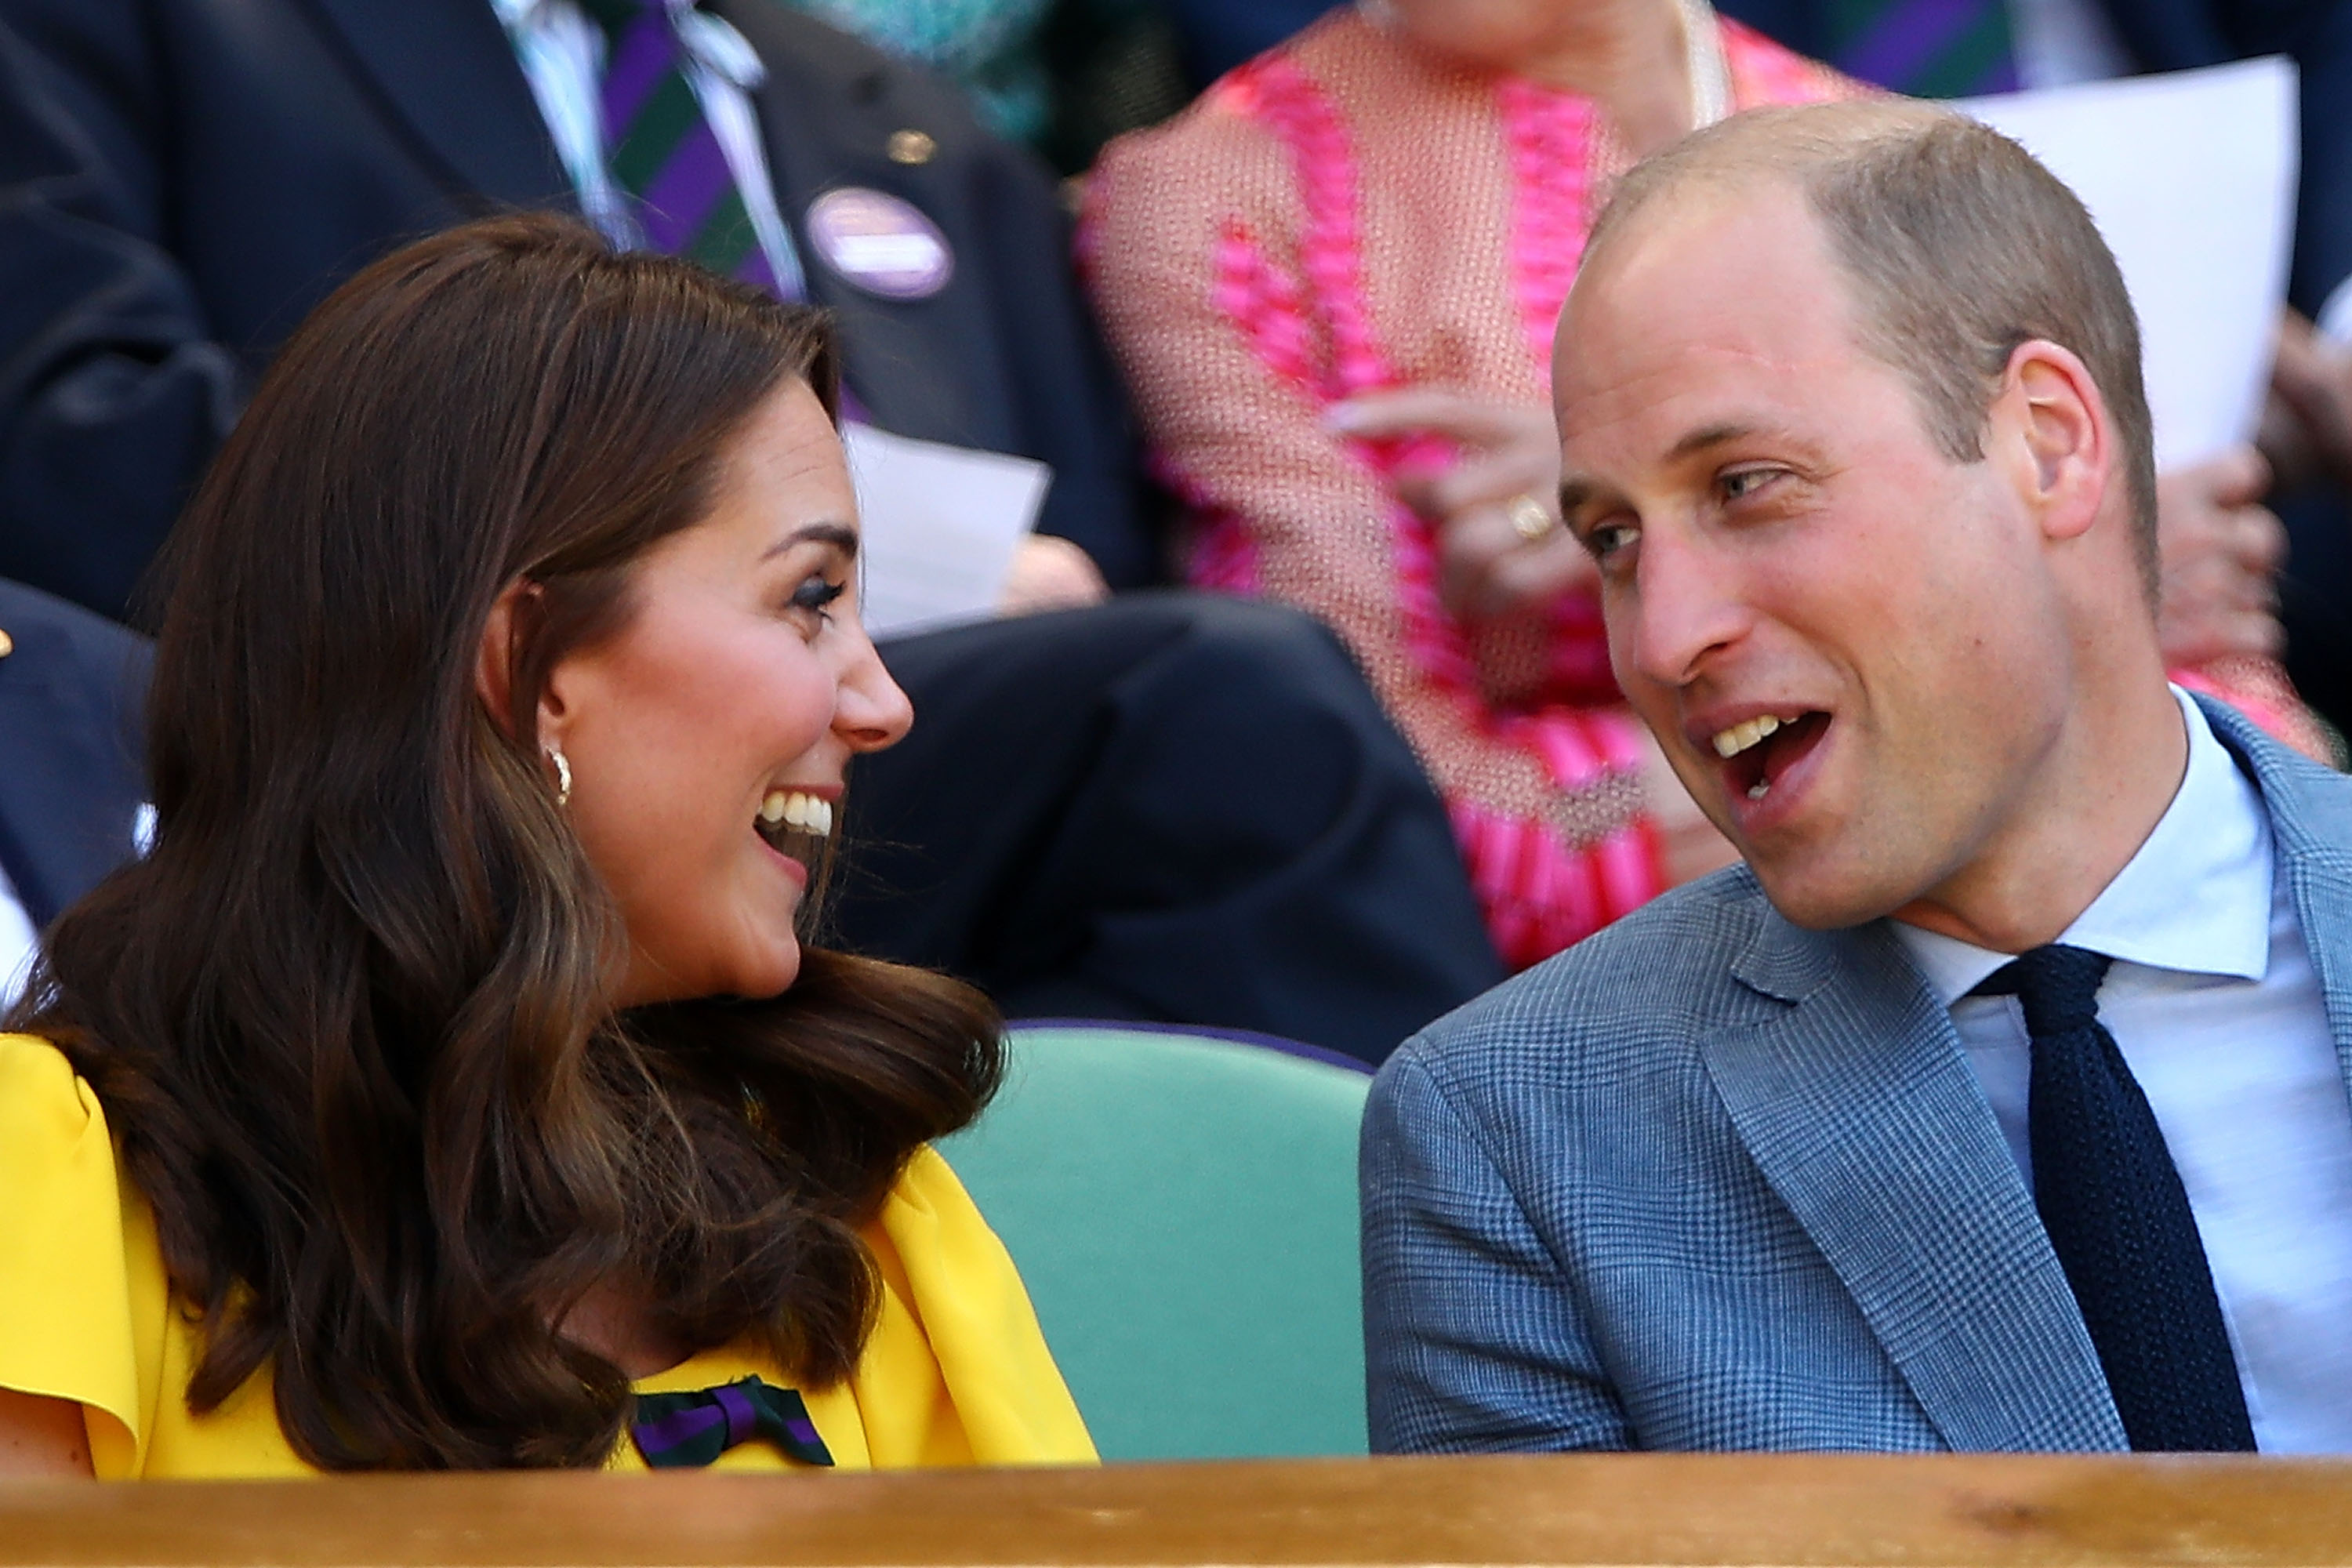 Catherine, Duchess of Cambridge, and Prince William, Duke of Cambridge, attend the Men's Singles final on day thirteen of the Wimbledon Lawn Tennis Championships at All England Lawn Tennis and Croquet Club on July 15, 2018, in London, England. (Getty Images)